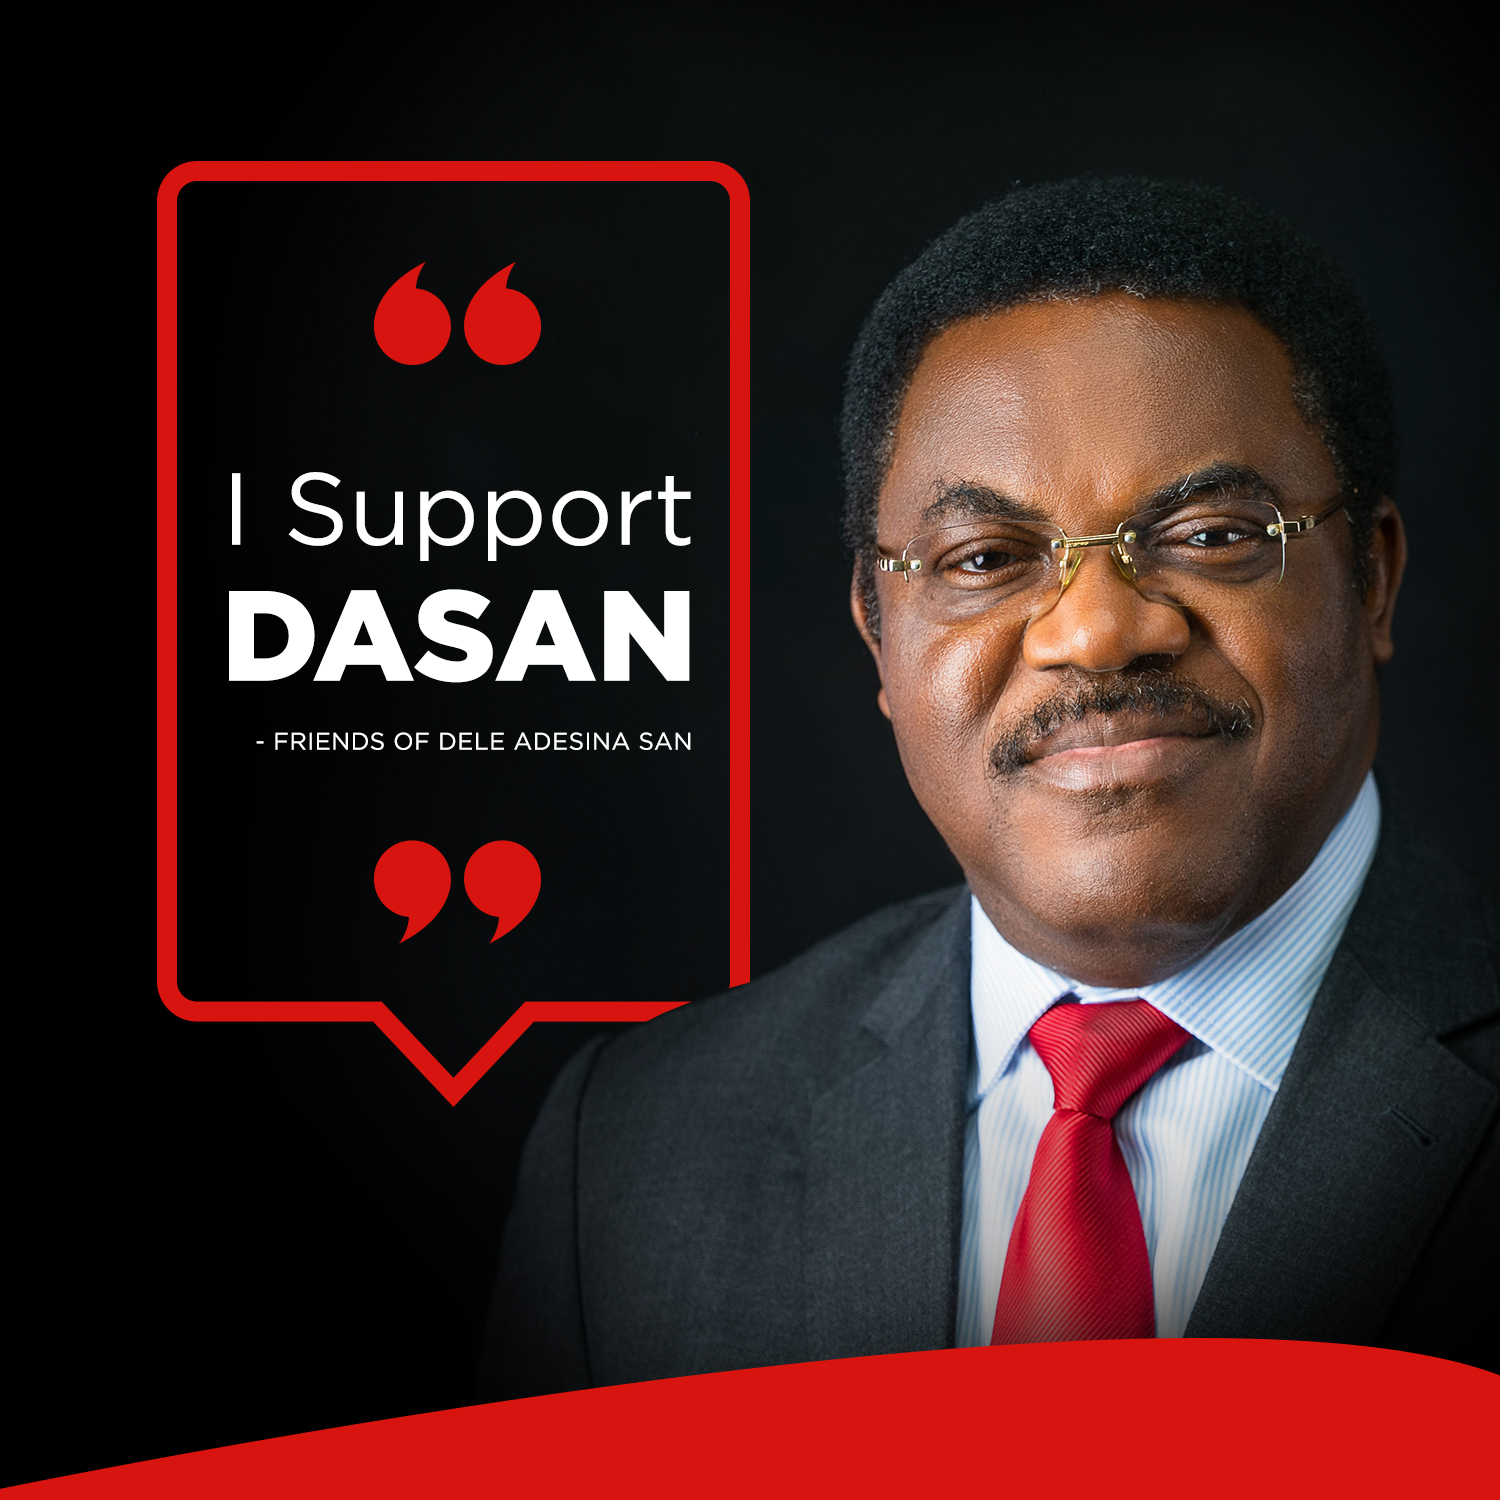 DELE ADESINA, SAN IS DIFFERENT